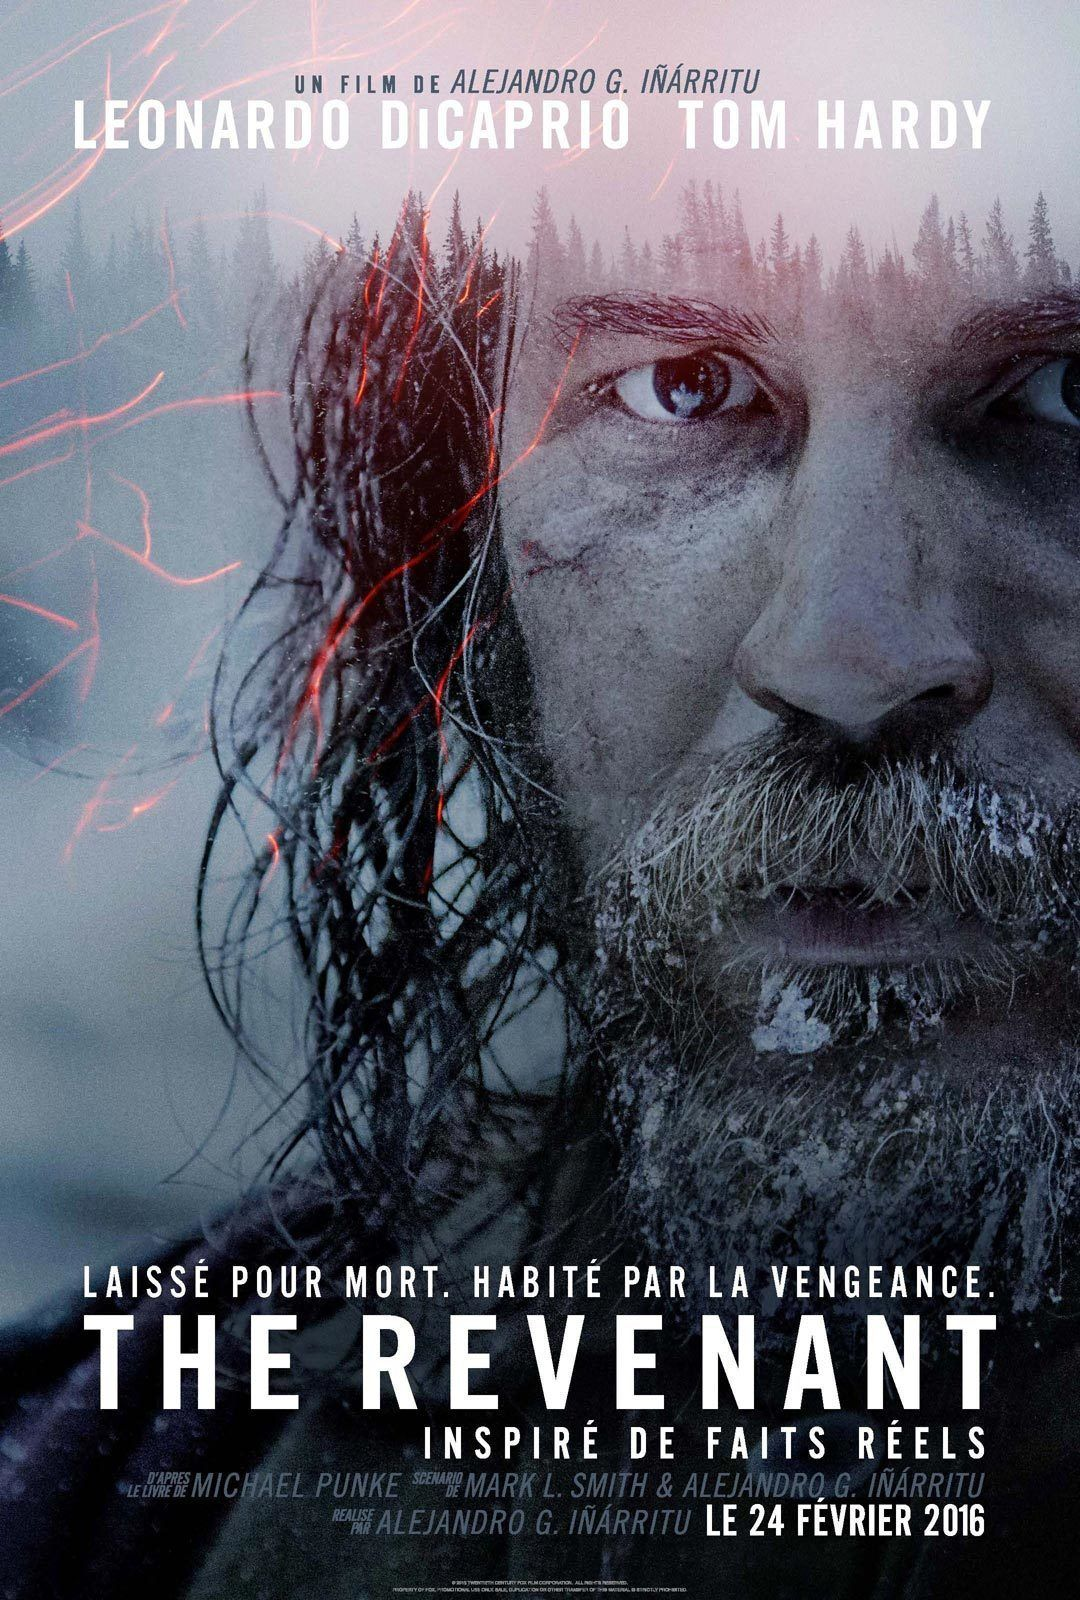 The Revenant Film Complet en Streaming VF - Film Complet streaming vf | Film streaming vk | Regarder film streaming | Film en Streaming